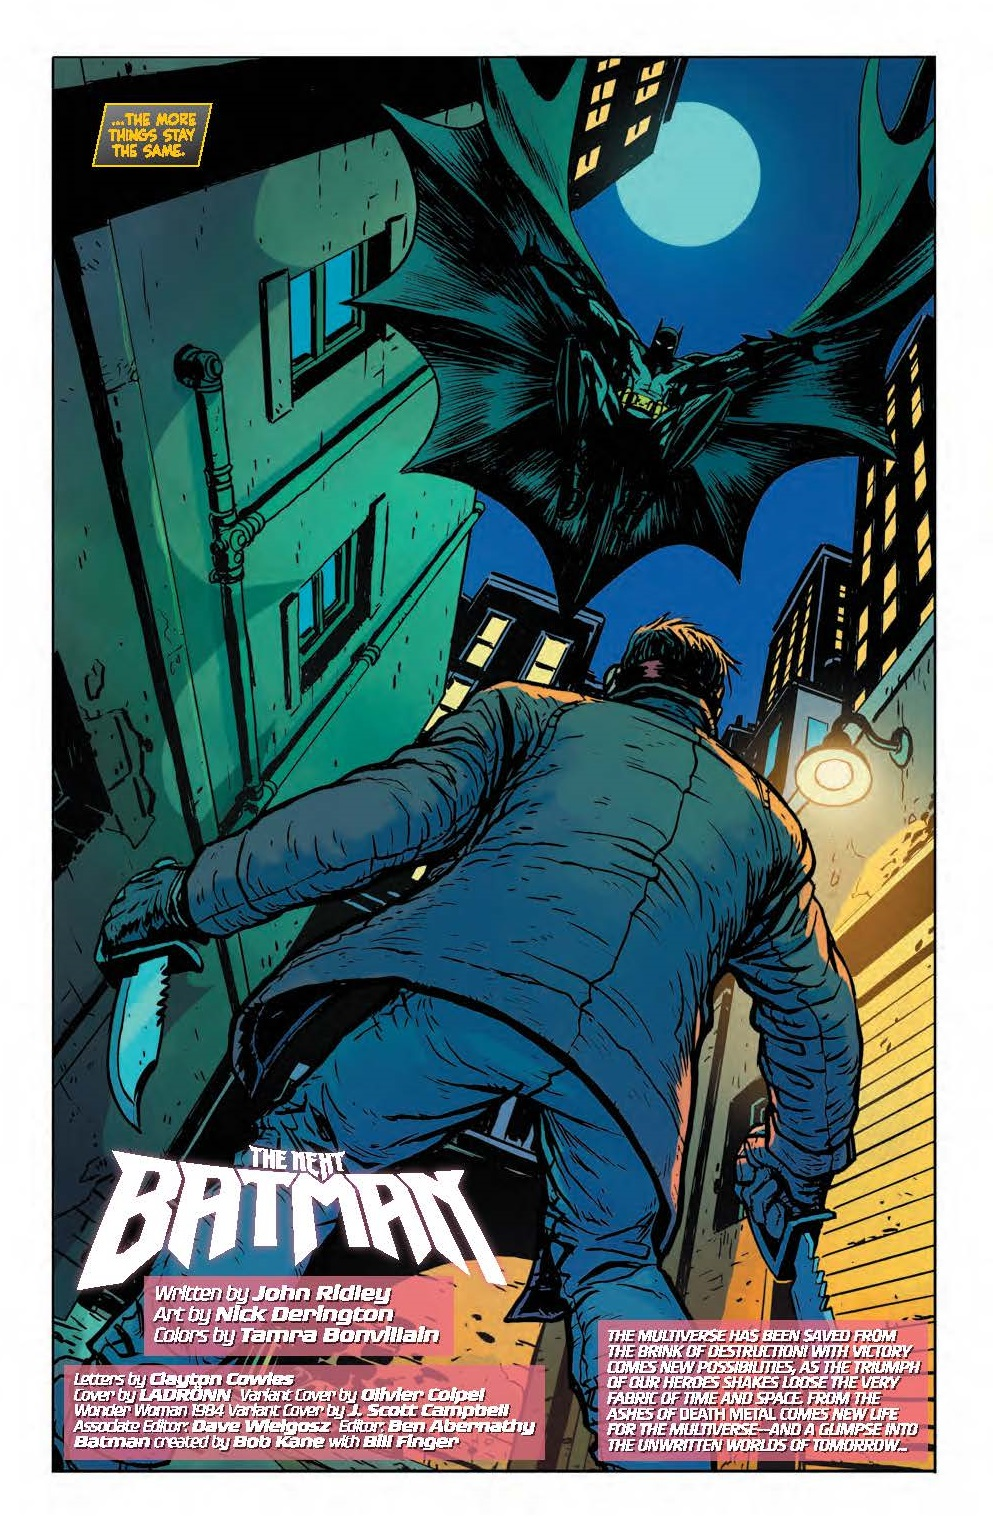 How The Next Batman Sets Up a New Saga for the Dark Knight